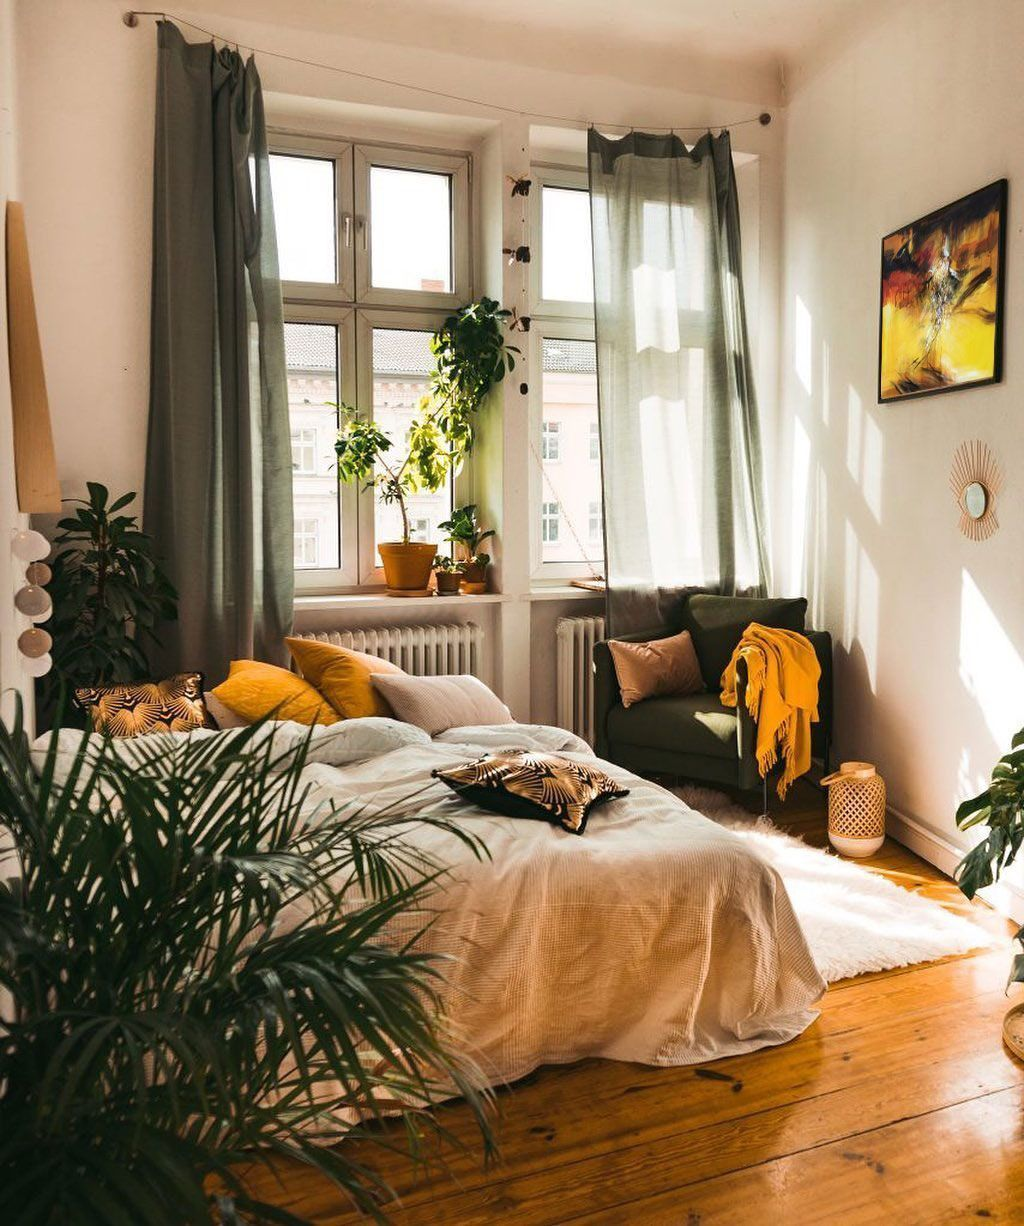 The Best Living Room Warm Color Scheme In 2020 Aesthetic Bedroom Warm Bedroom Aesthetic Room Decor #warm #color #scheme #for #living #room